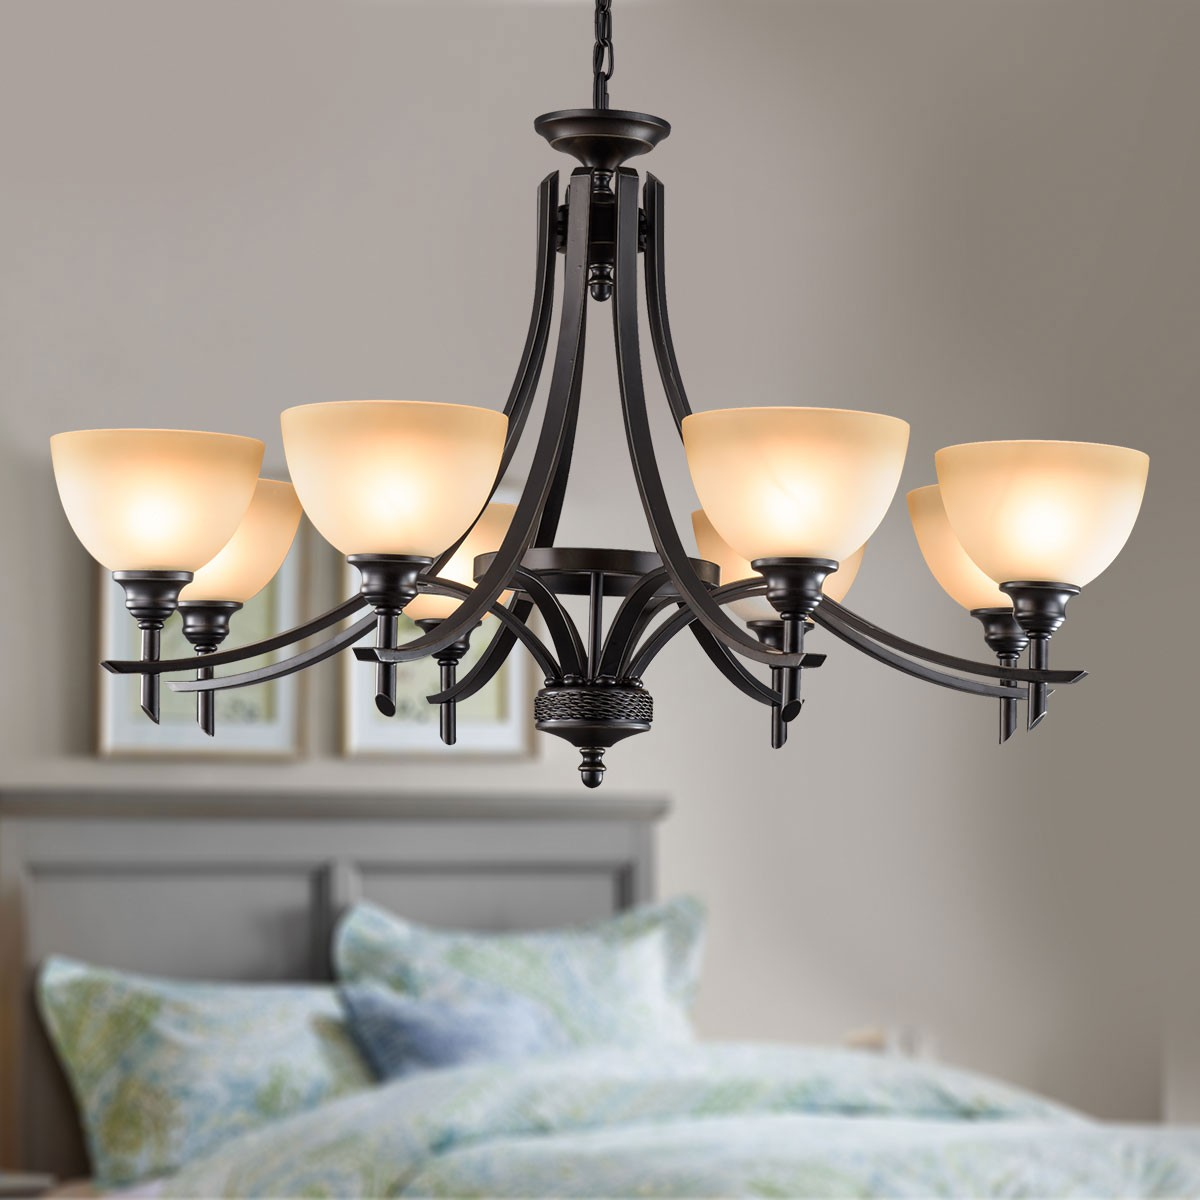 8 Light Black Wrought Iron Chandelier With Glass Shades